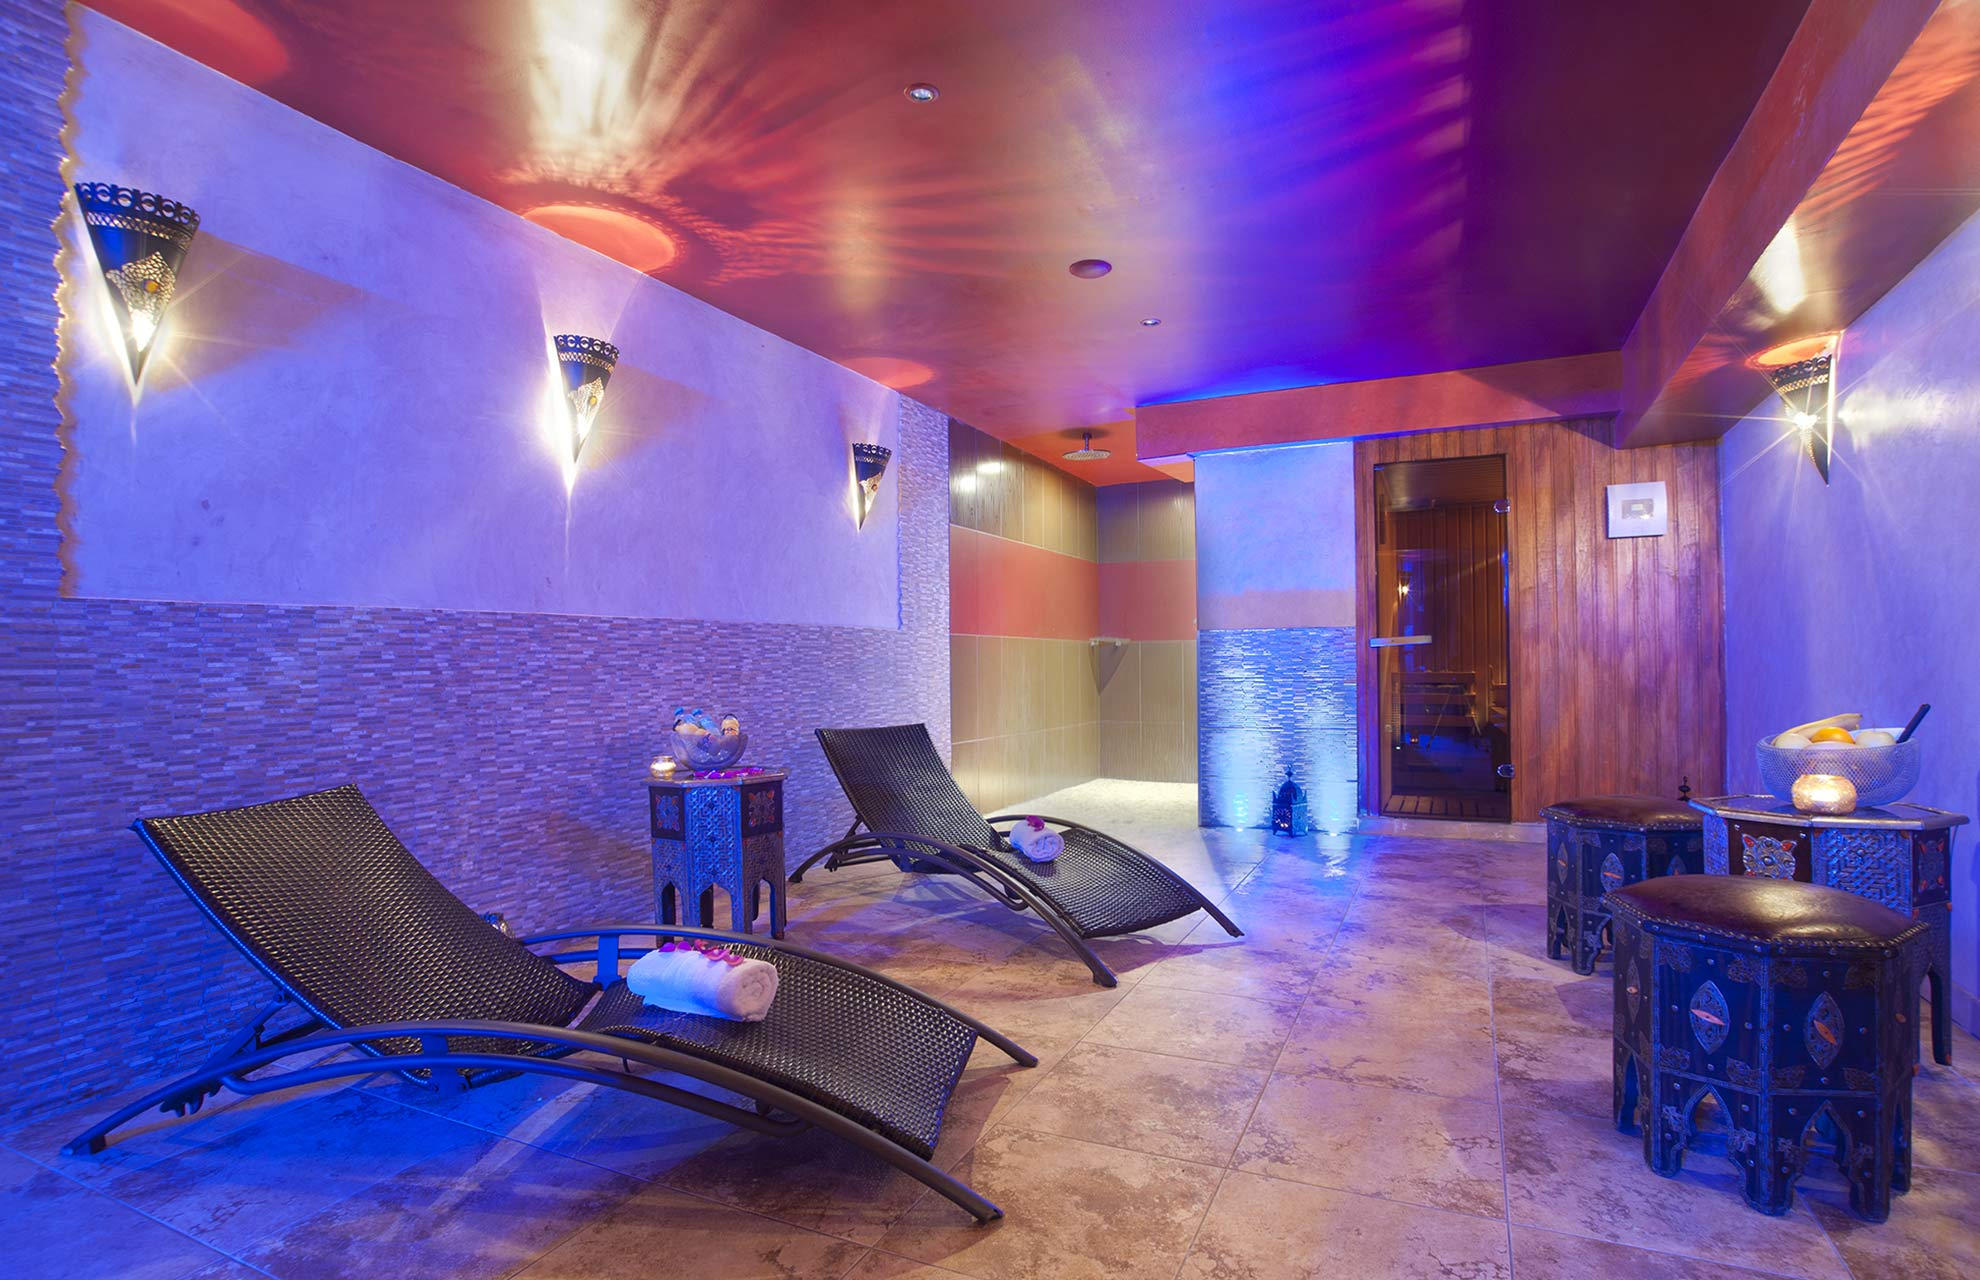 Volupto Spa Faches Thumesnil Le Of Spa A Faches Thumesnil - Lazyrit.com